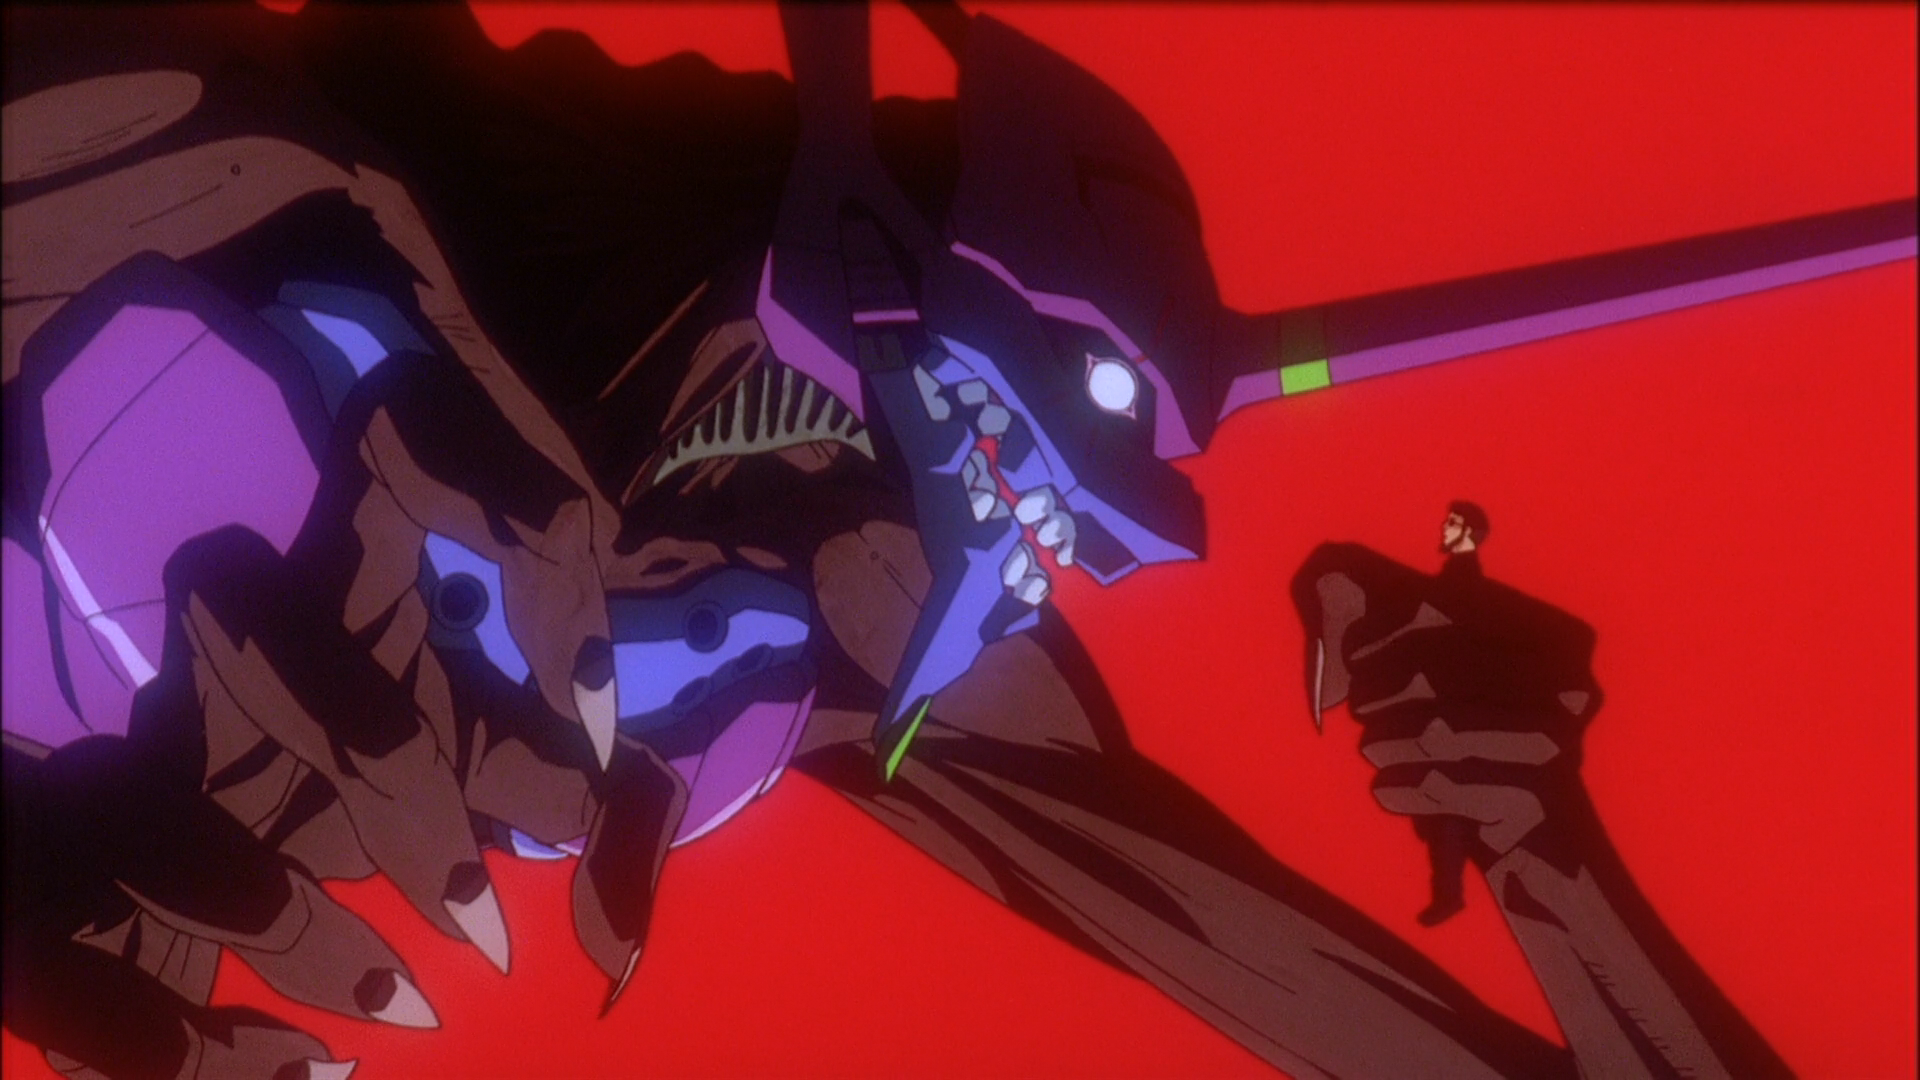 Another_Eva-01_Gendo_(EoE).png (1920×1080)